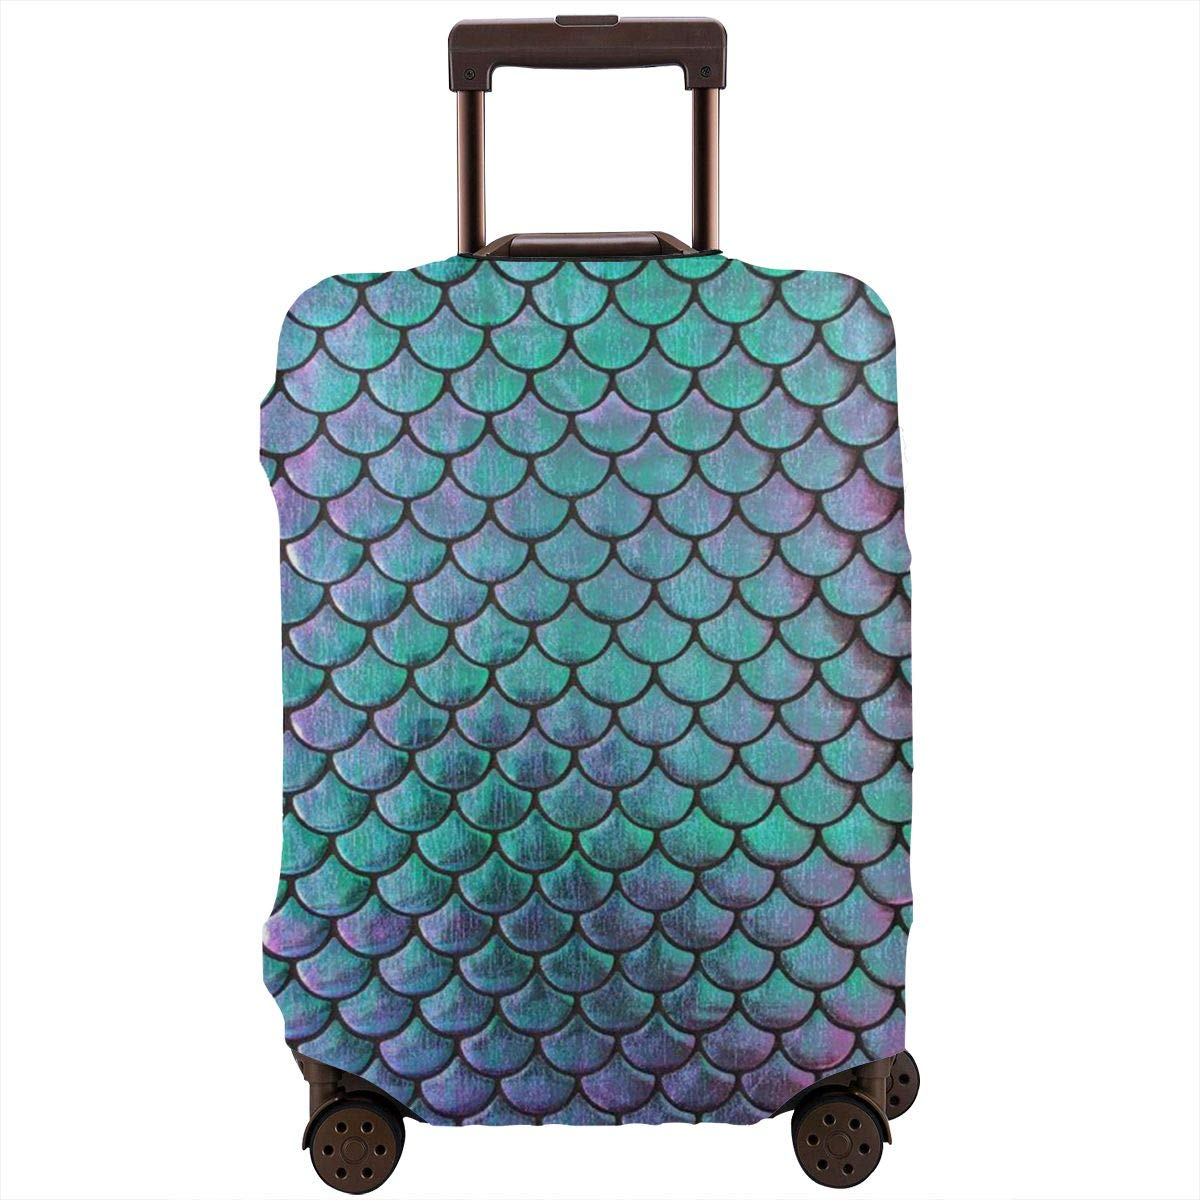 Tlkkkd_N Mermaid Metallic Scales Turquoise and Purple Travel Luggage Cover Anti-Scratch Baggage Suitcase Protector Cover Fits 18-32 Inch